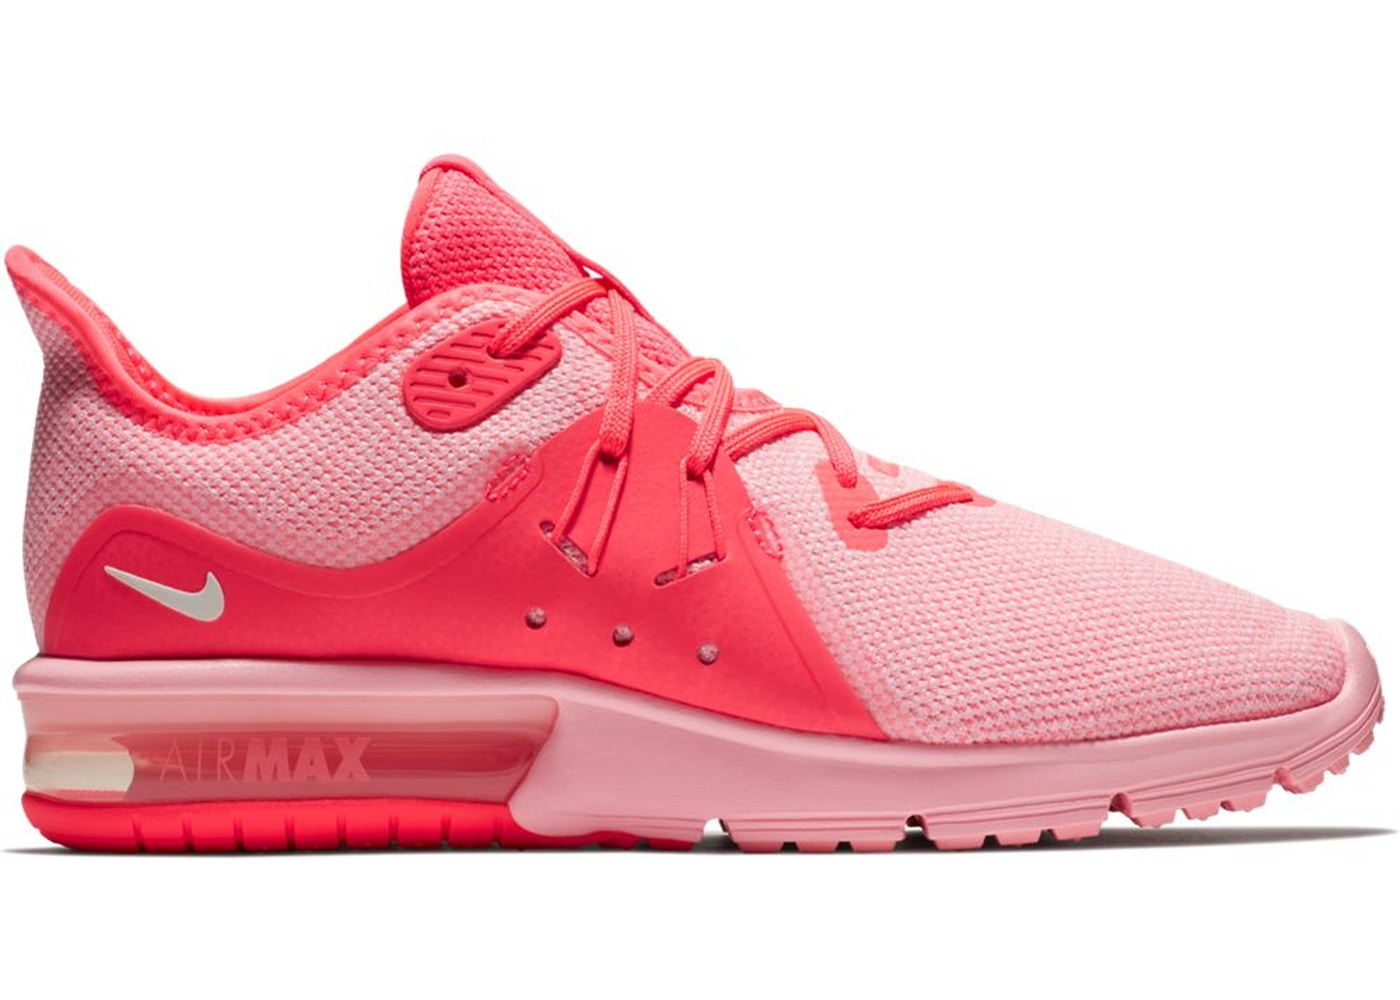 Nike Air Max Sequent 3 Hot Punch (W) - 908993-601